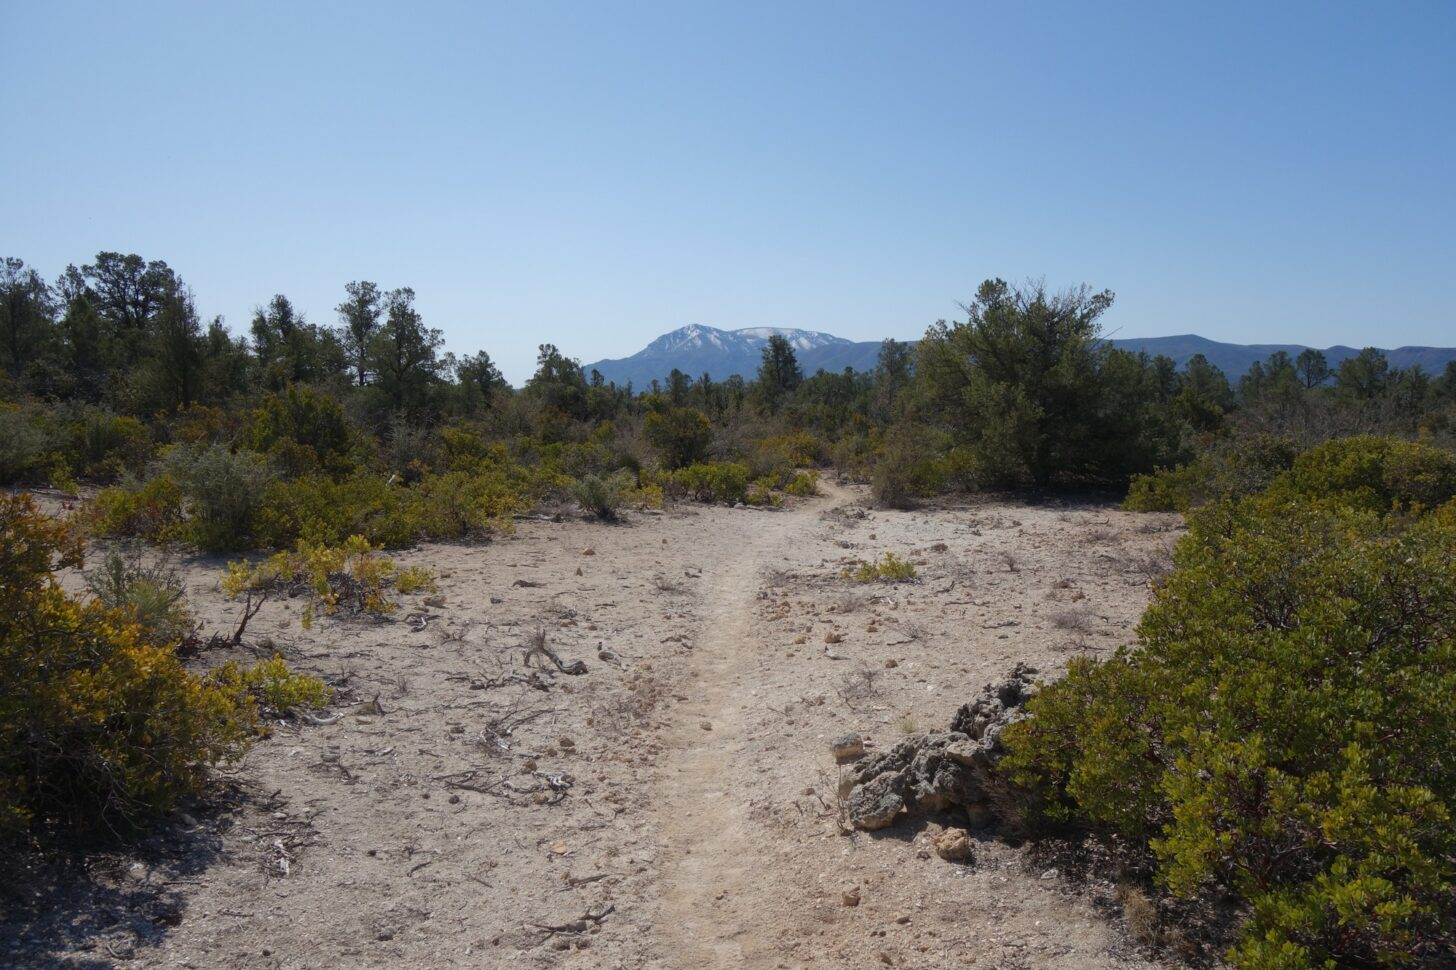 A sandy wash and some scrub brush in the foreground, with a blue mountain peak in the far distance.